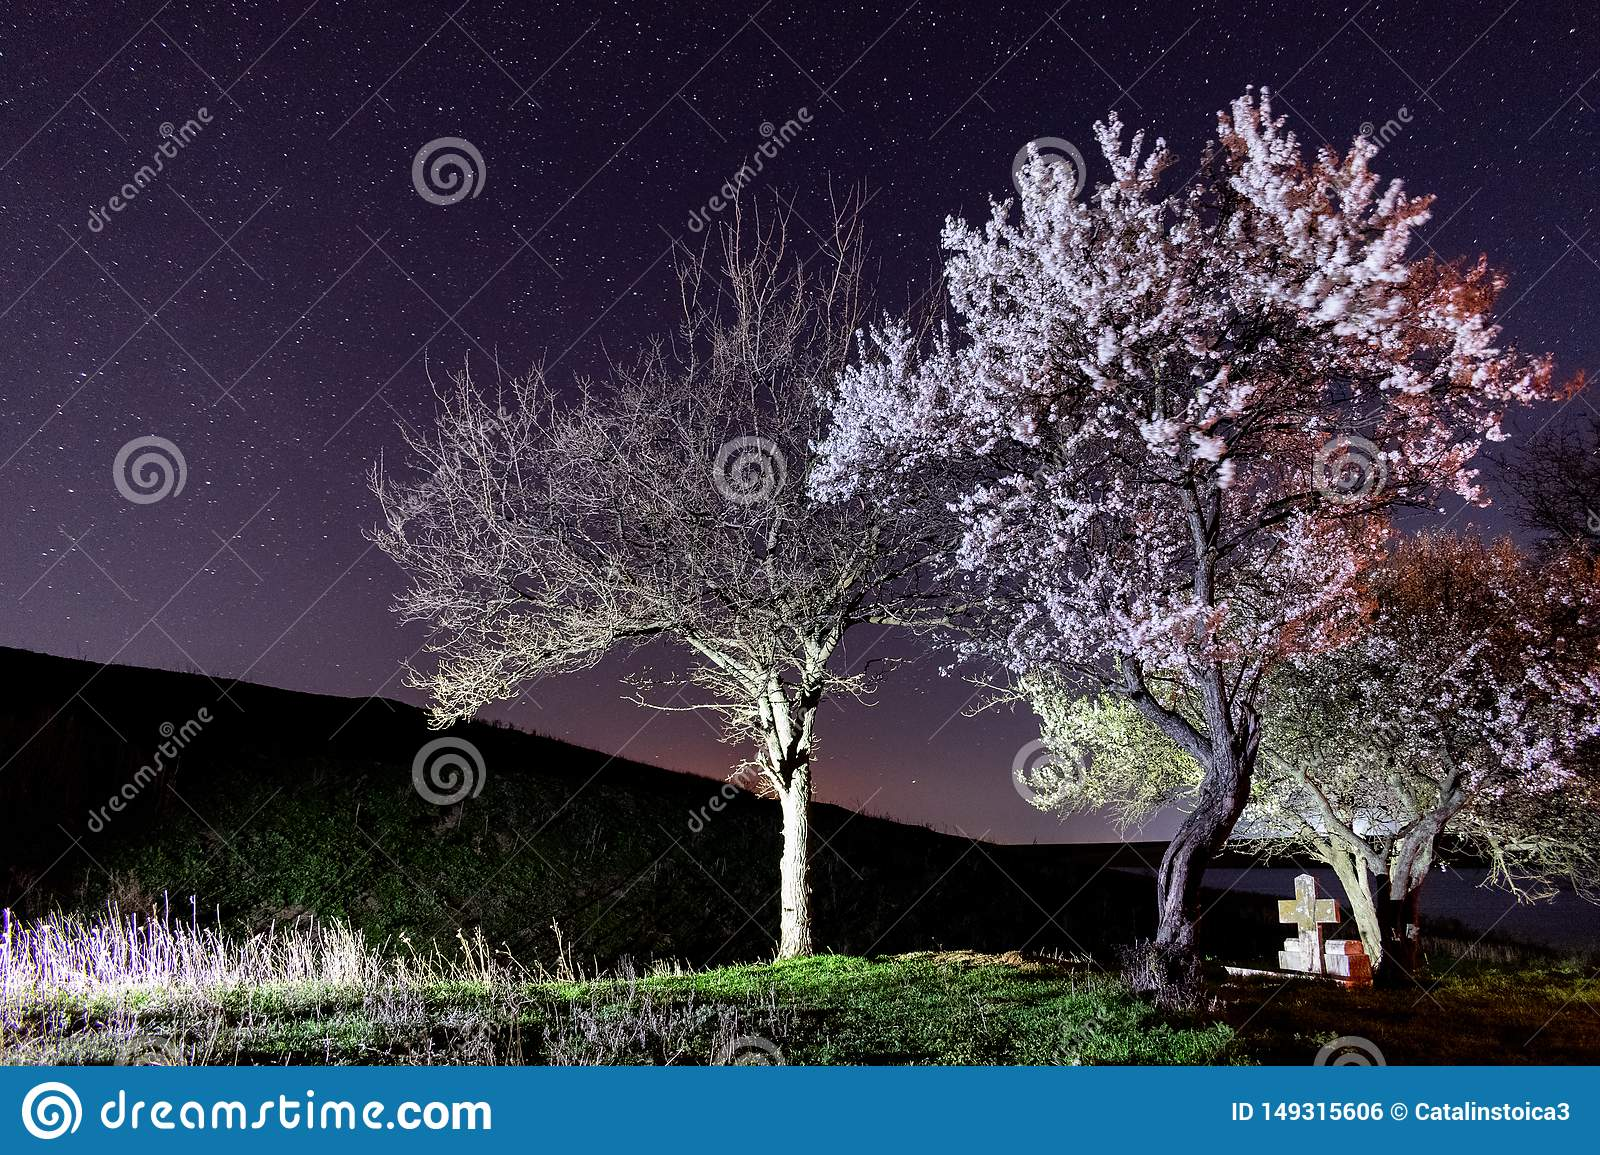 Crystal clear sky and stars over blooming trees.